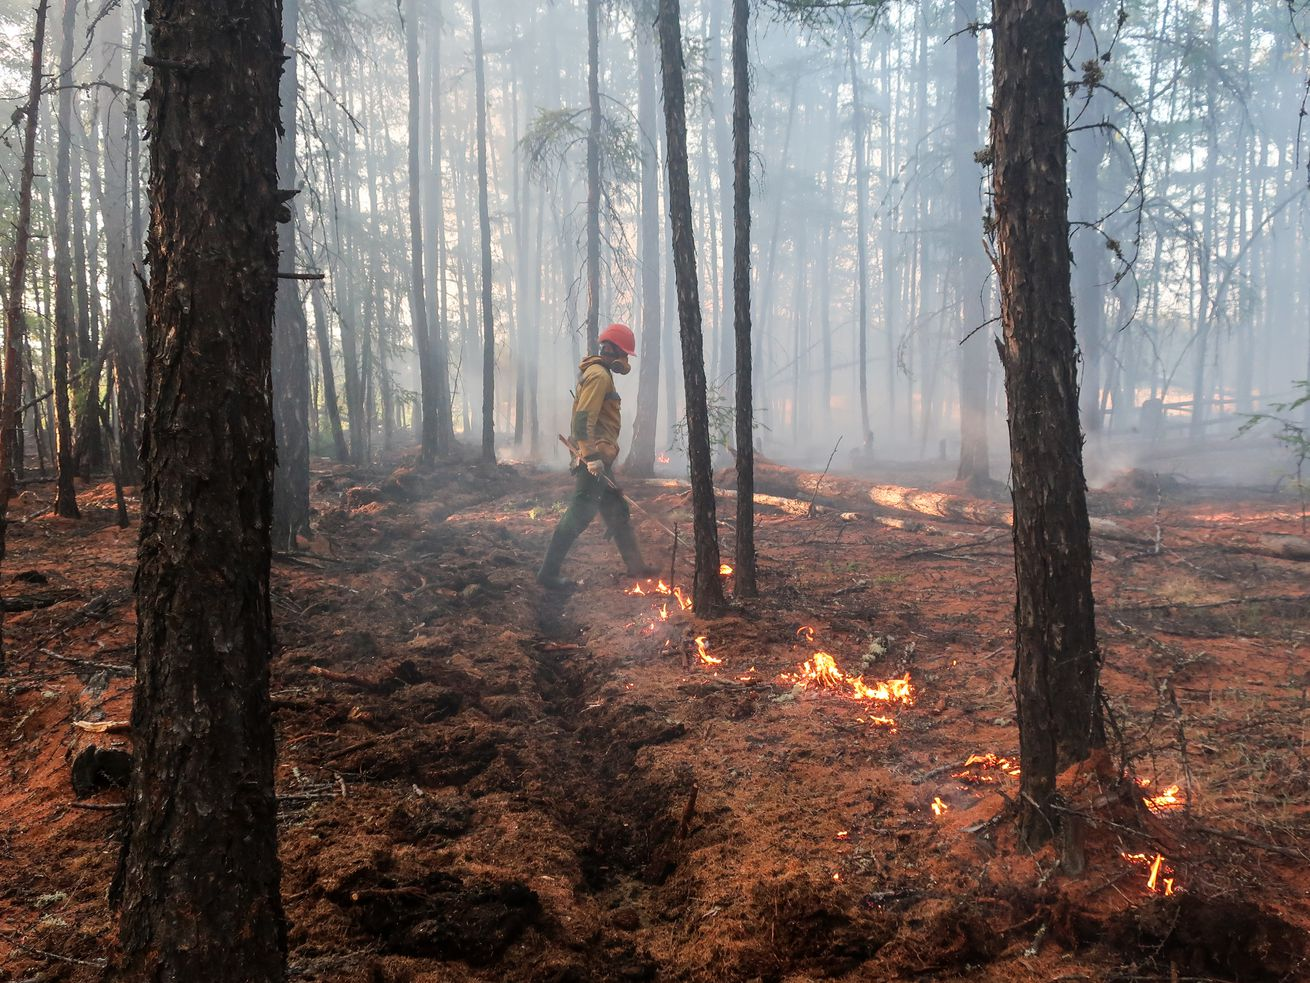 A firefighter of the Yakut Branch of the Aerial Forest Protection Service (Avialesookhrana) makes a controlled burn along a firebreak to protect a fire-prone area of the forest in central Yaktuia (Sakha Republic).